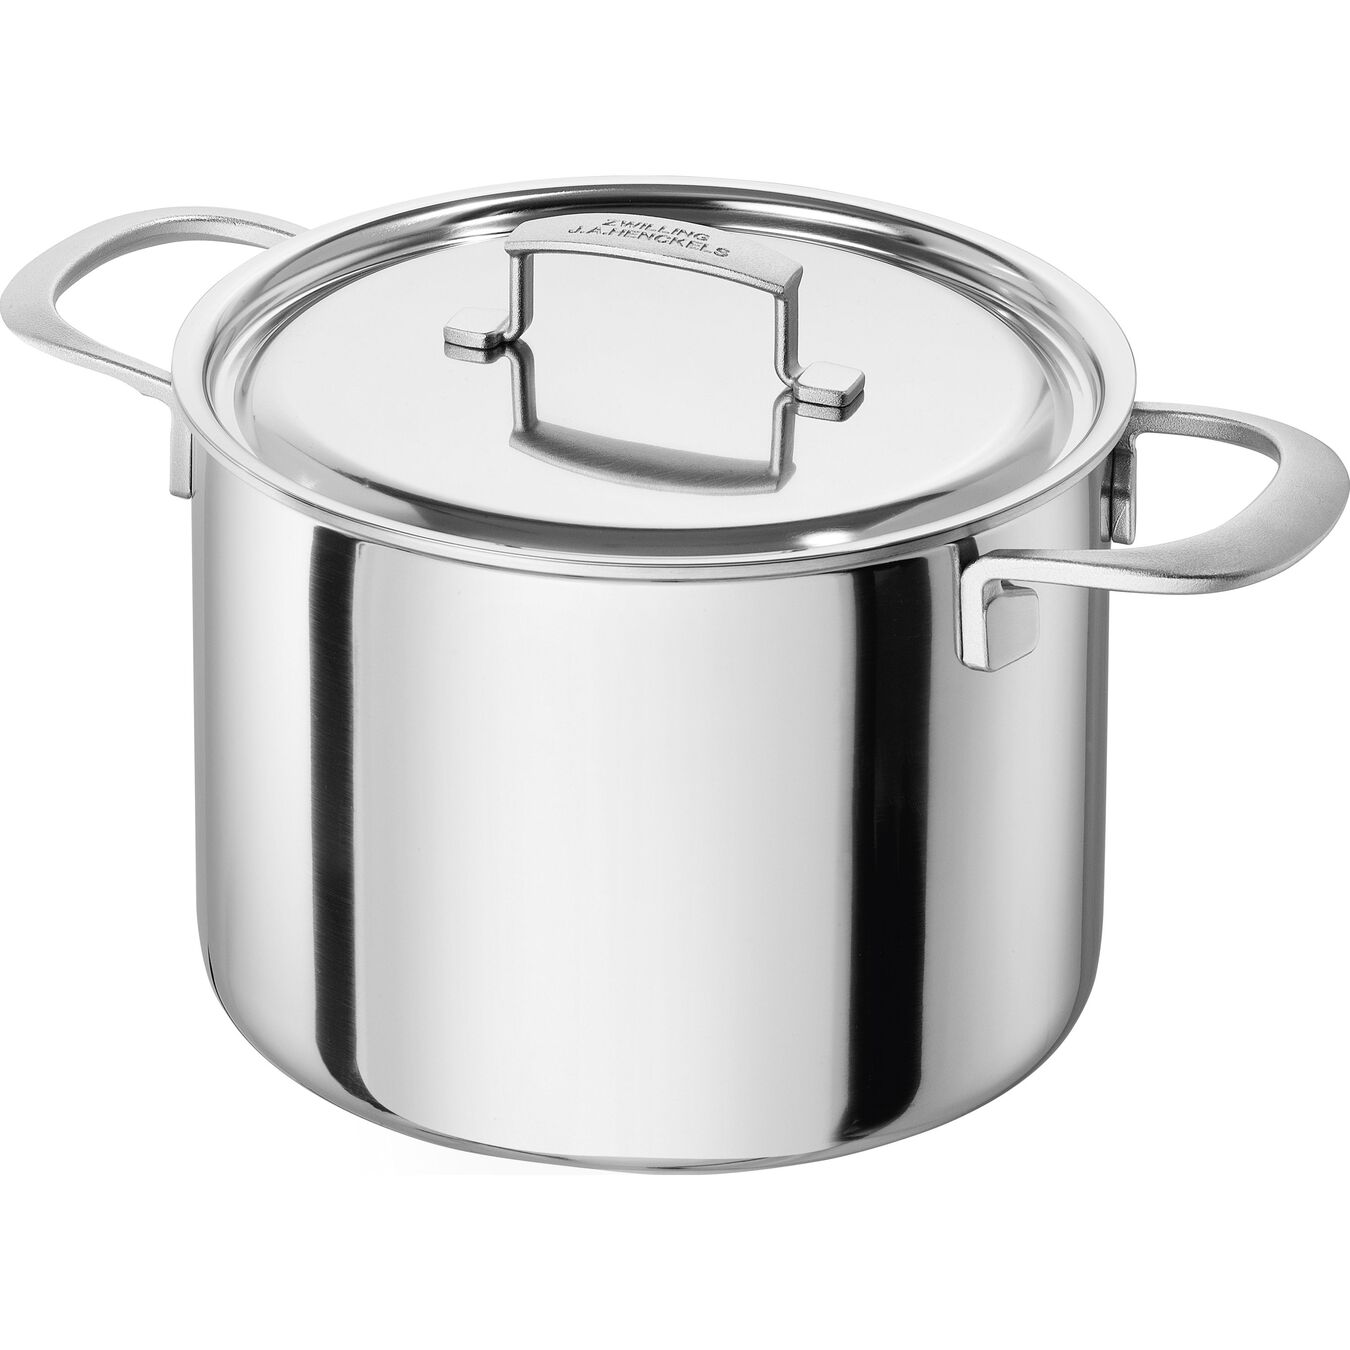 7.5 l 18/10 Stainless Steel Stock pot,,large 1